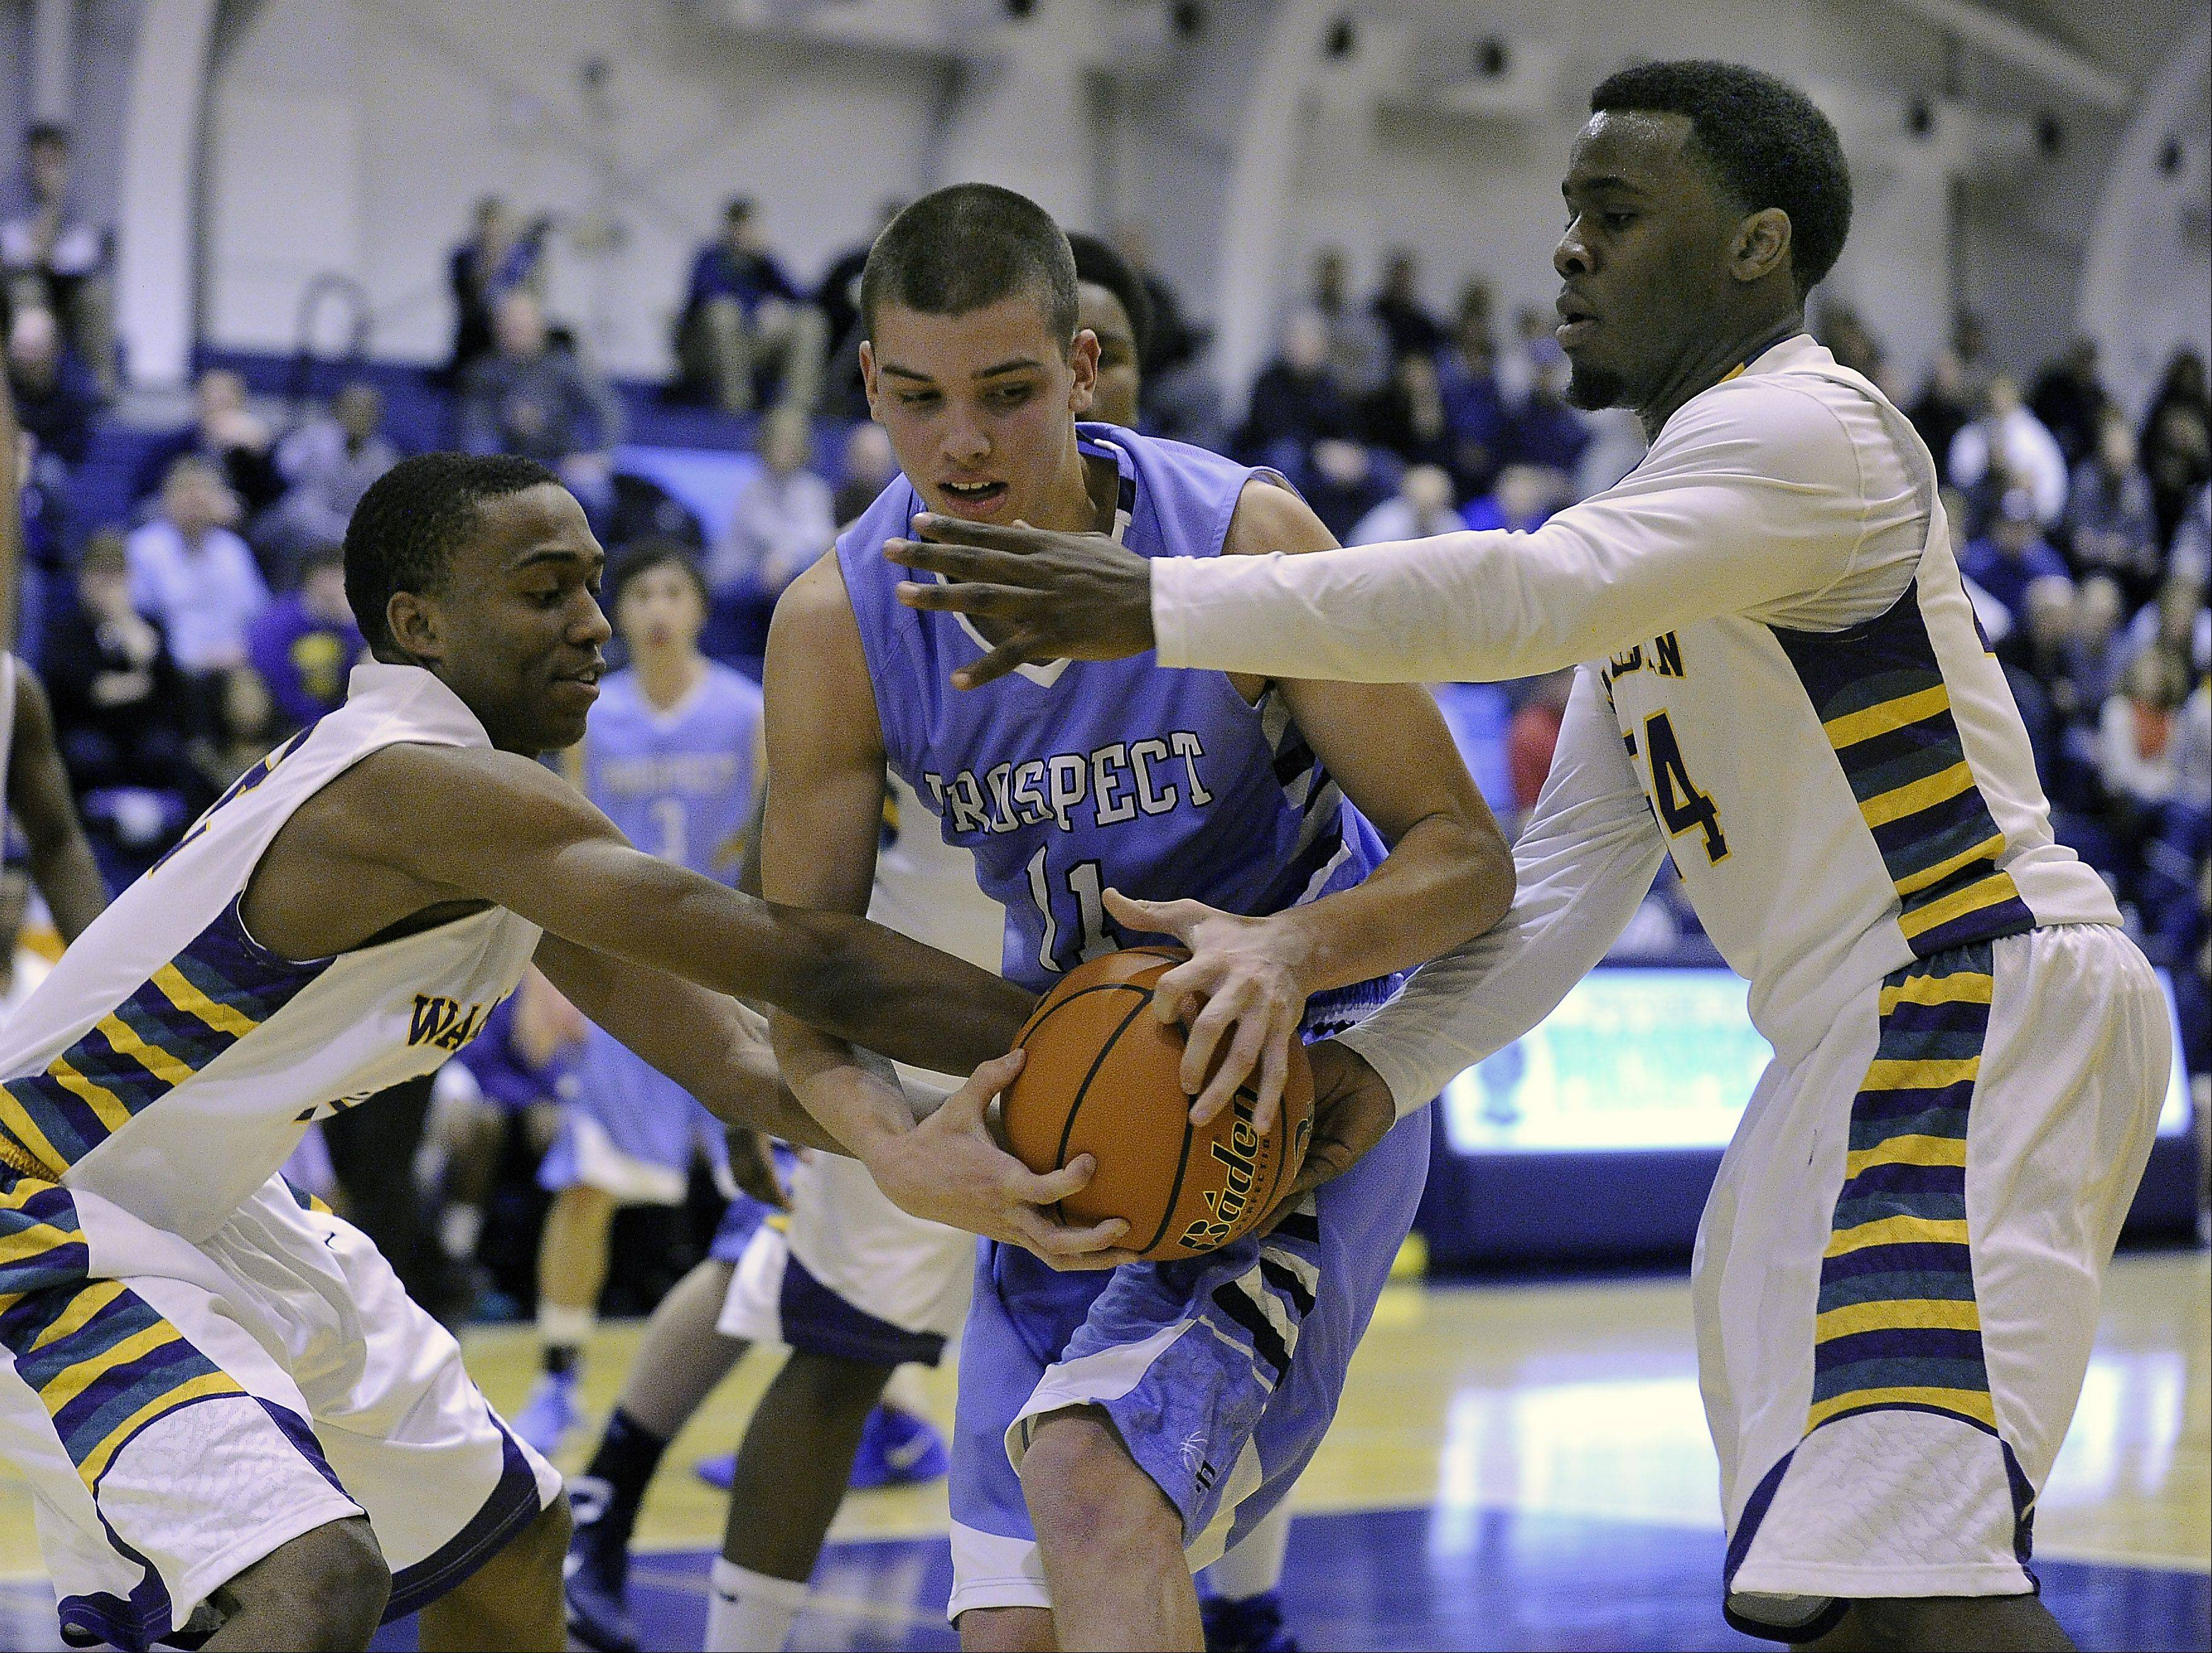 Images: Prospect vs. Waukegan, boys basketball